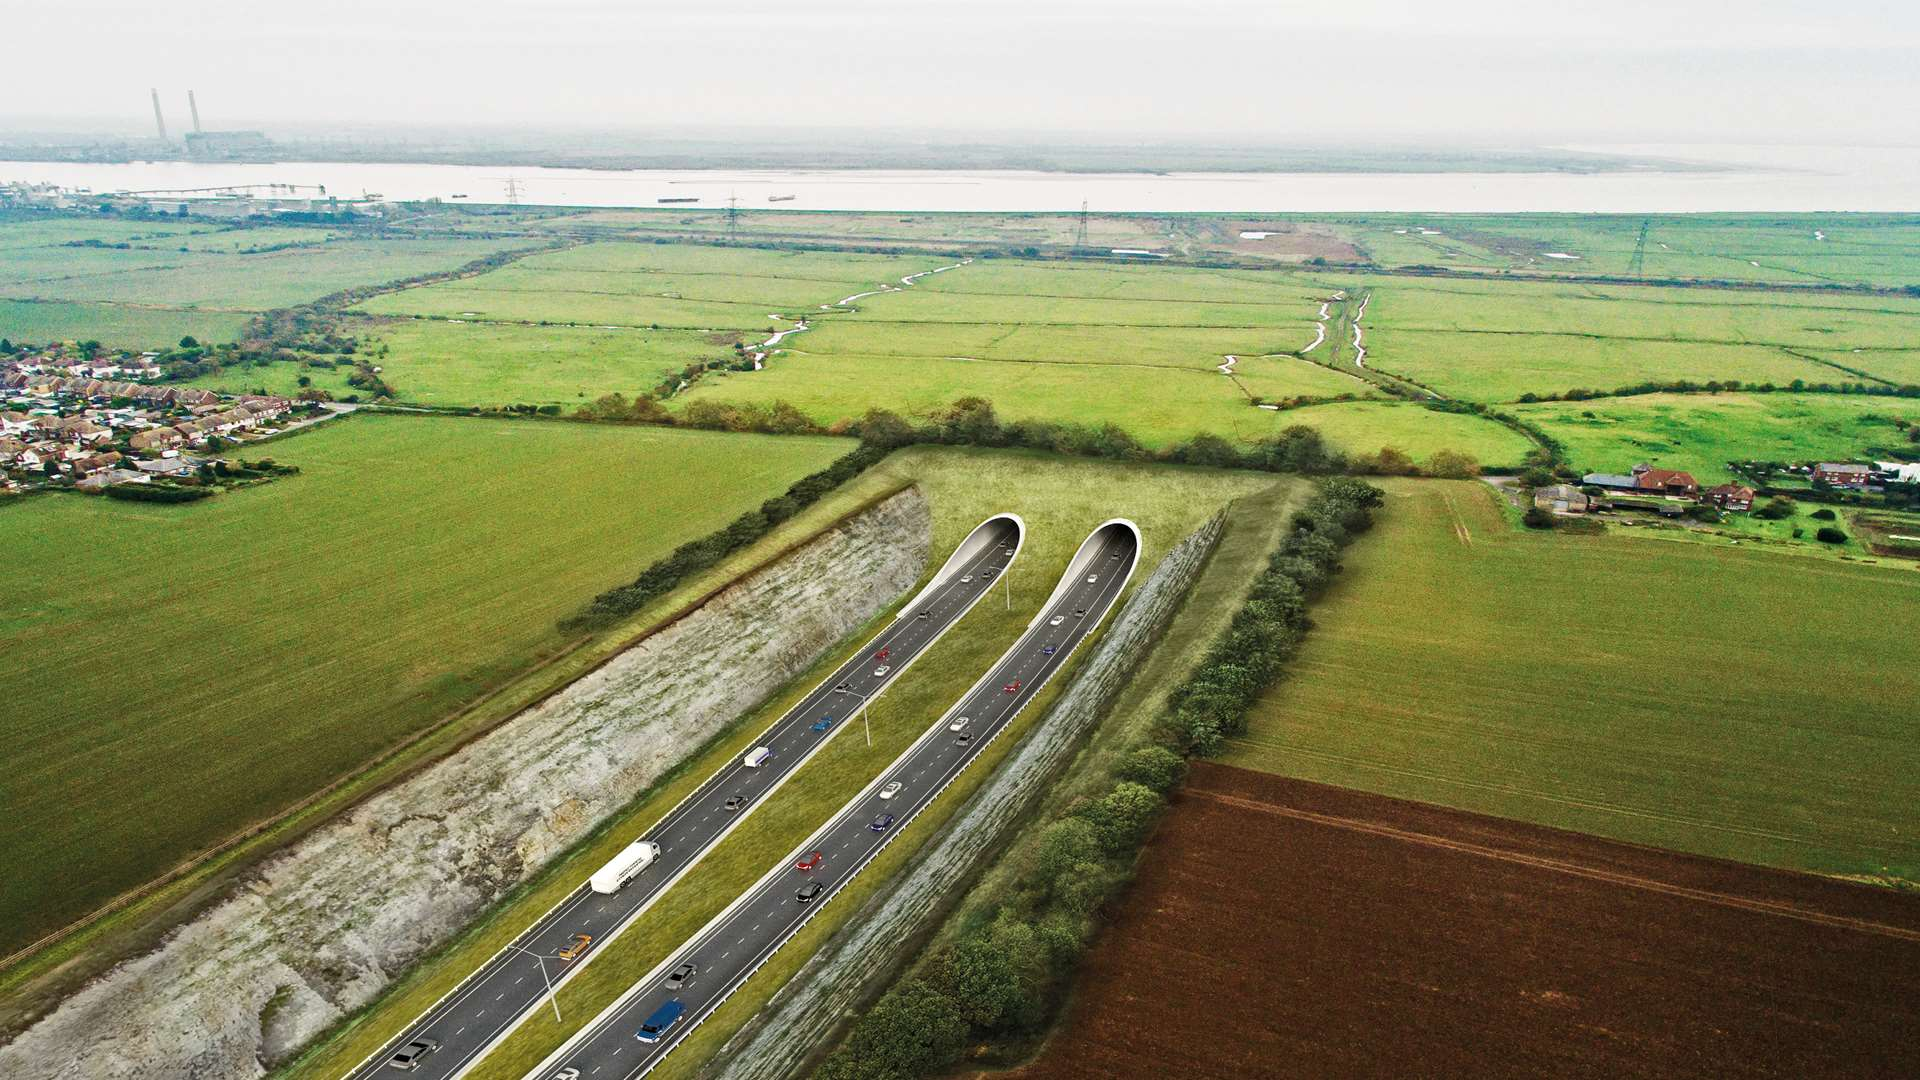 How the proposed Lower Thames Crossing will look, with a bored tunnel between the villages of Chalk and Shorne to Essex